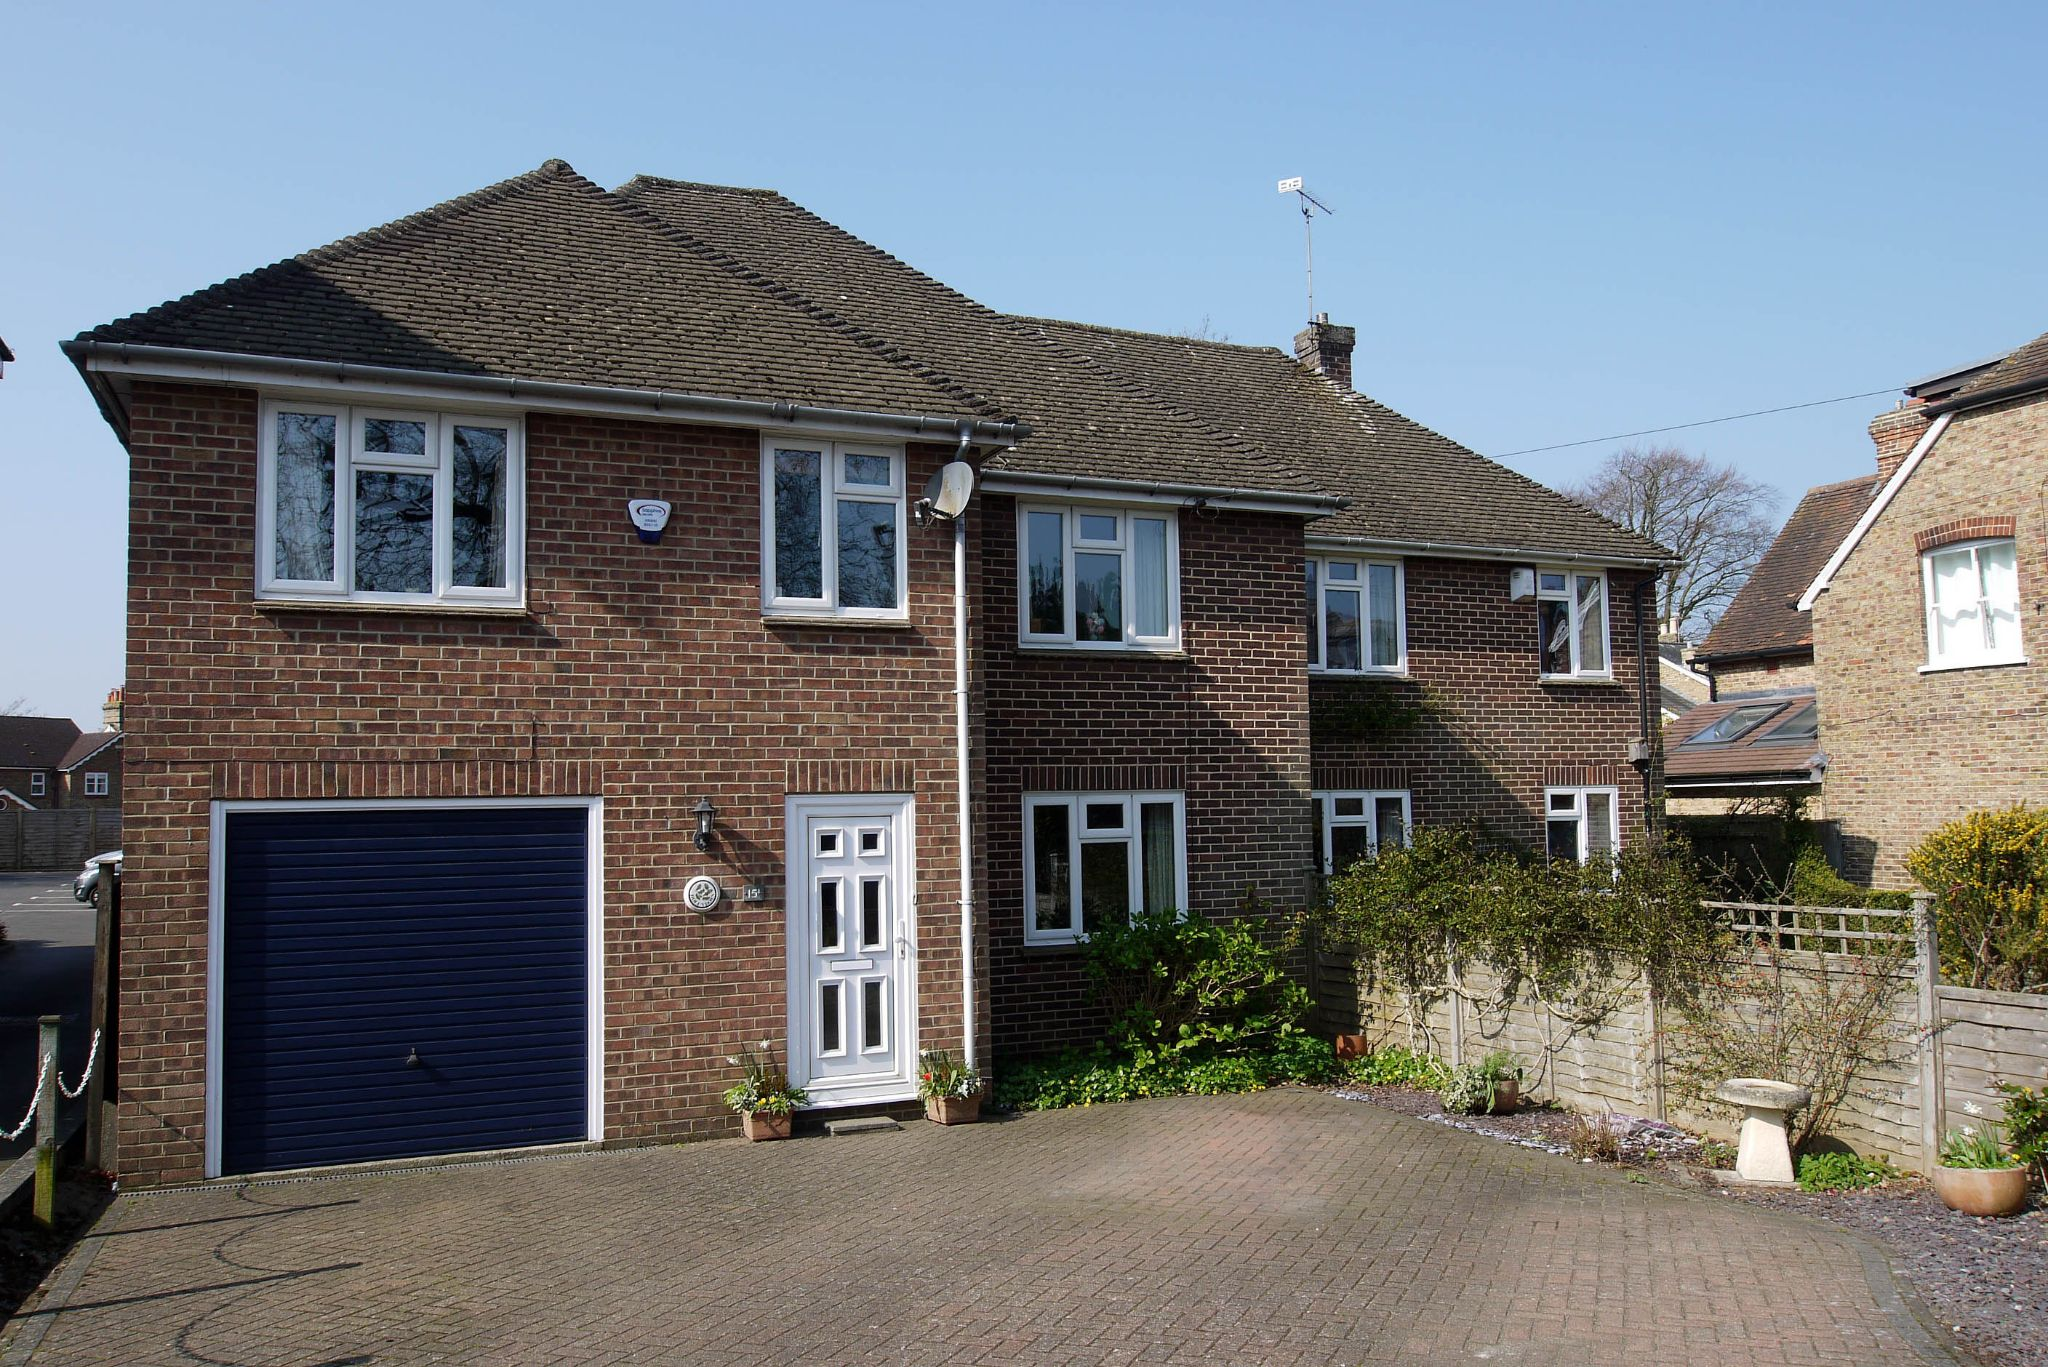 4 bedroom semi-detached house Sold in Sevenoaks - Photograph 1